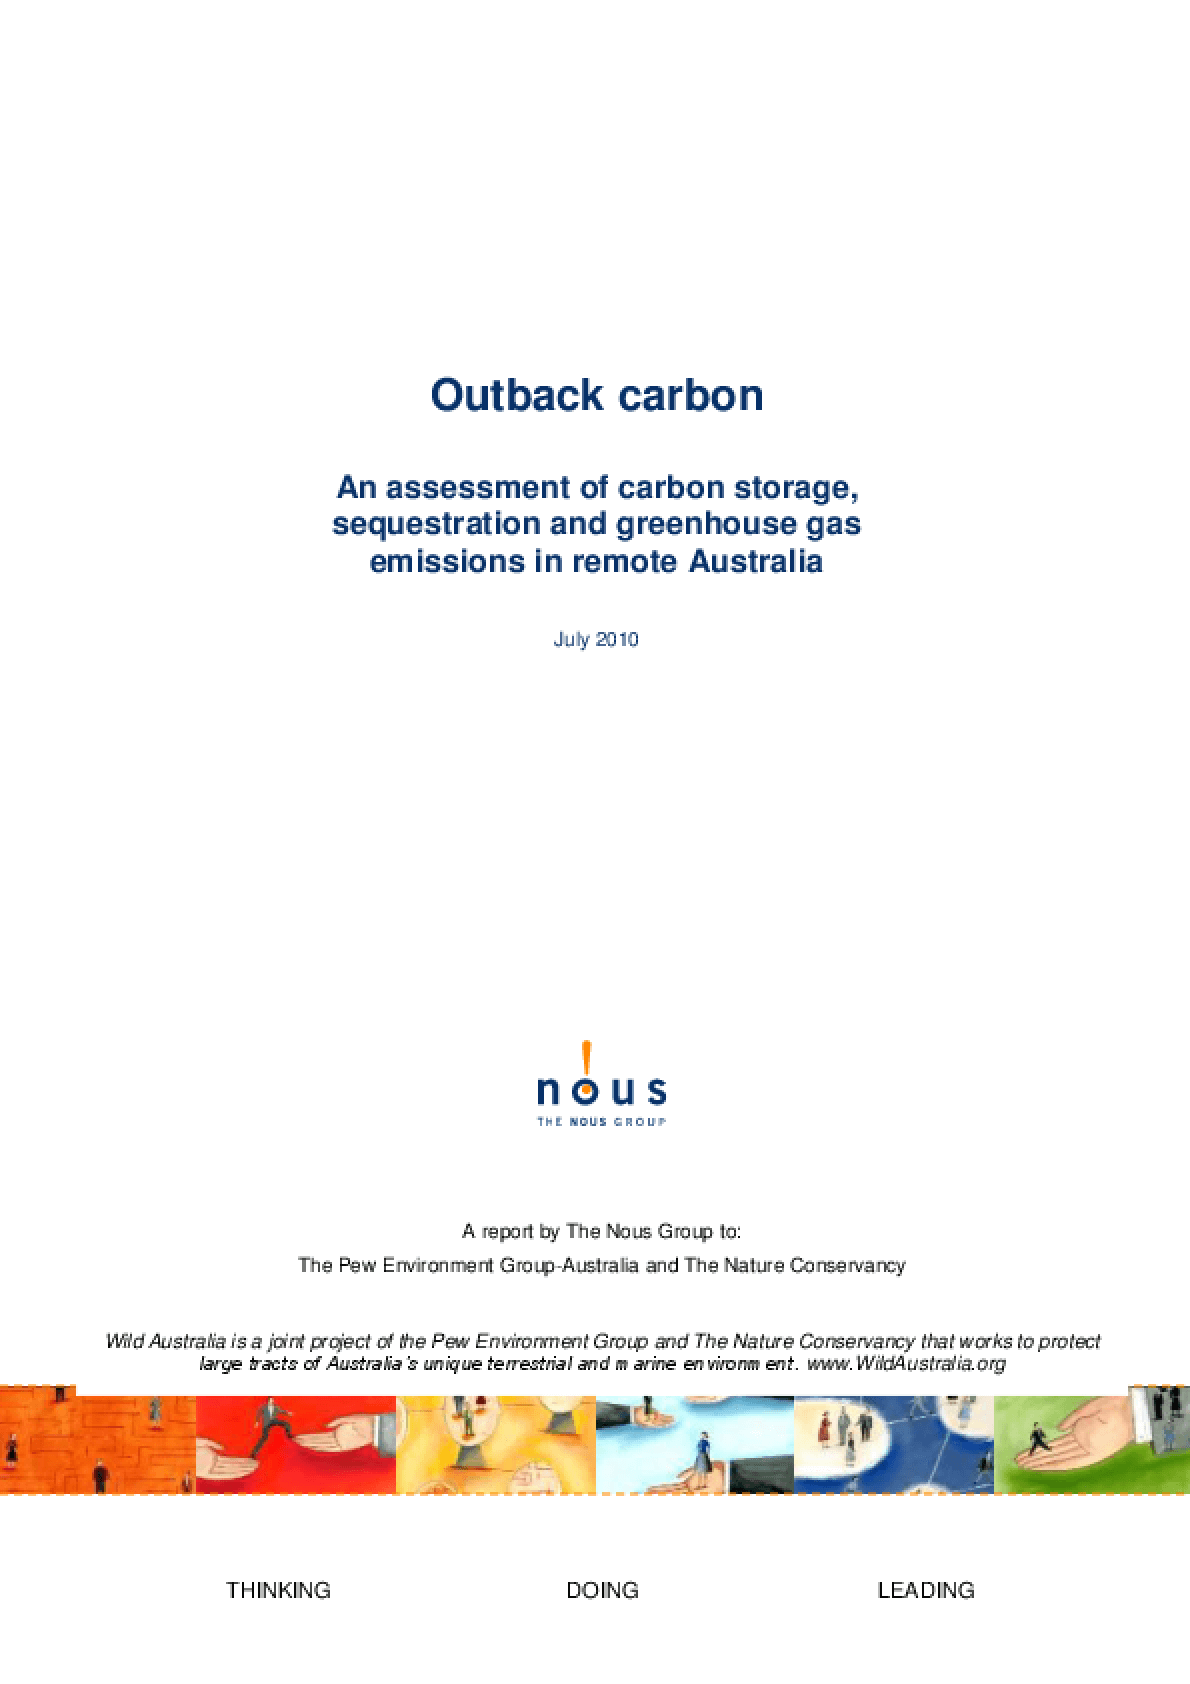 Outback Carbon: An Assessment of Carbon Storage, Sequestration and Greenhouse Gas Emissions in Remote Australia